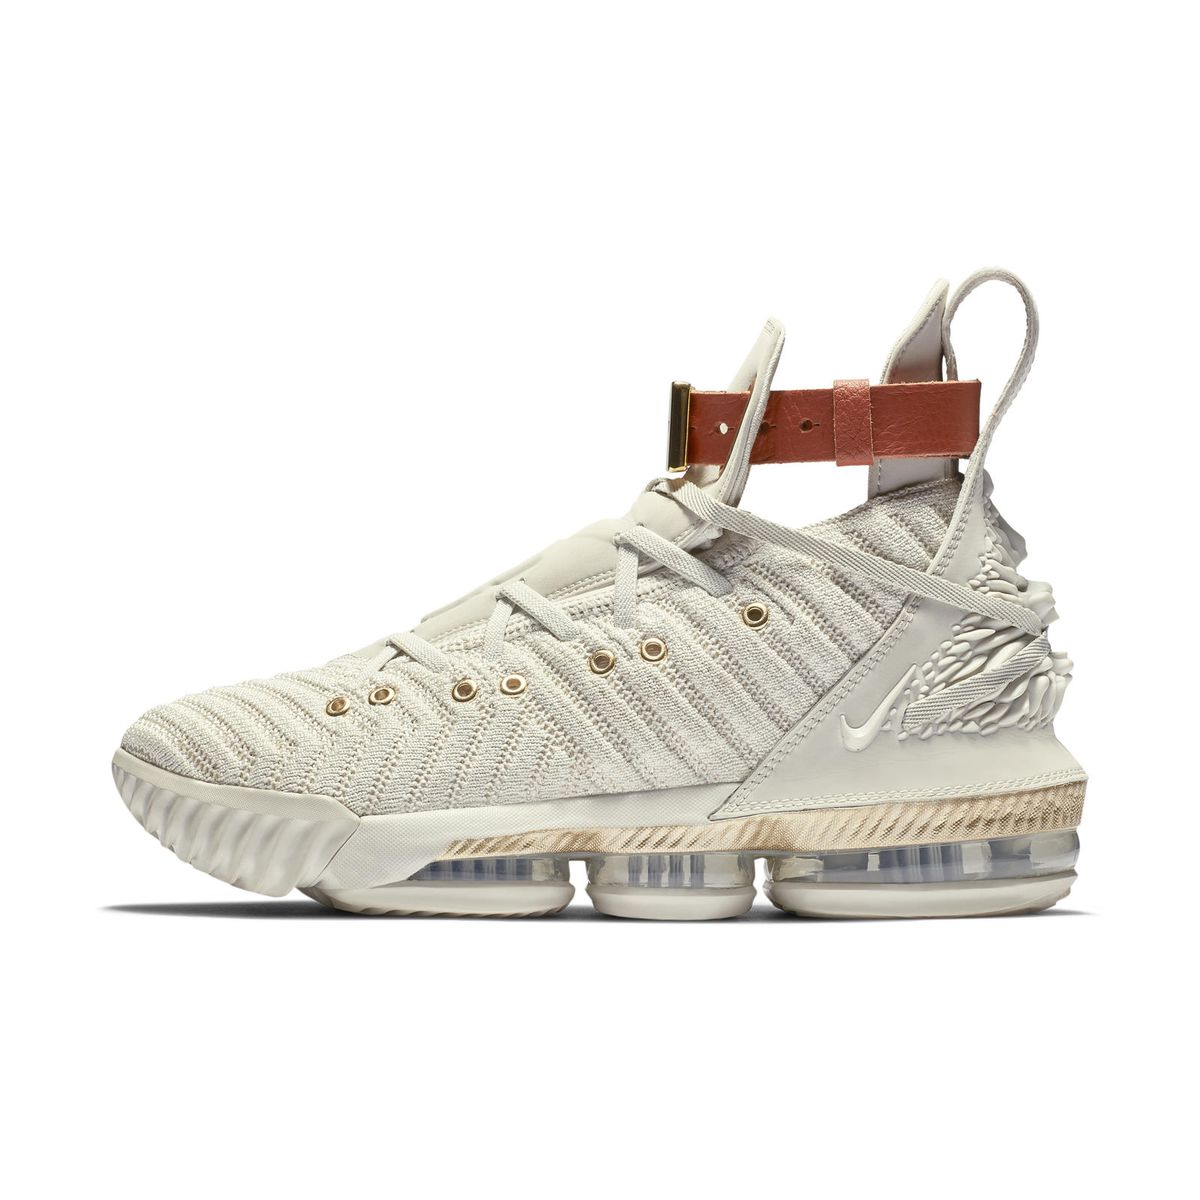 The HFR x LeBron 16 shoe was designed for women by women. Here s how ... 63ffb2265